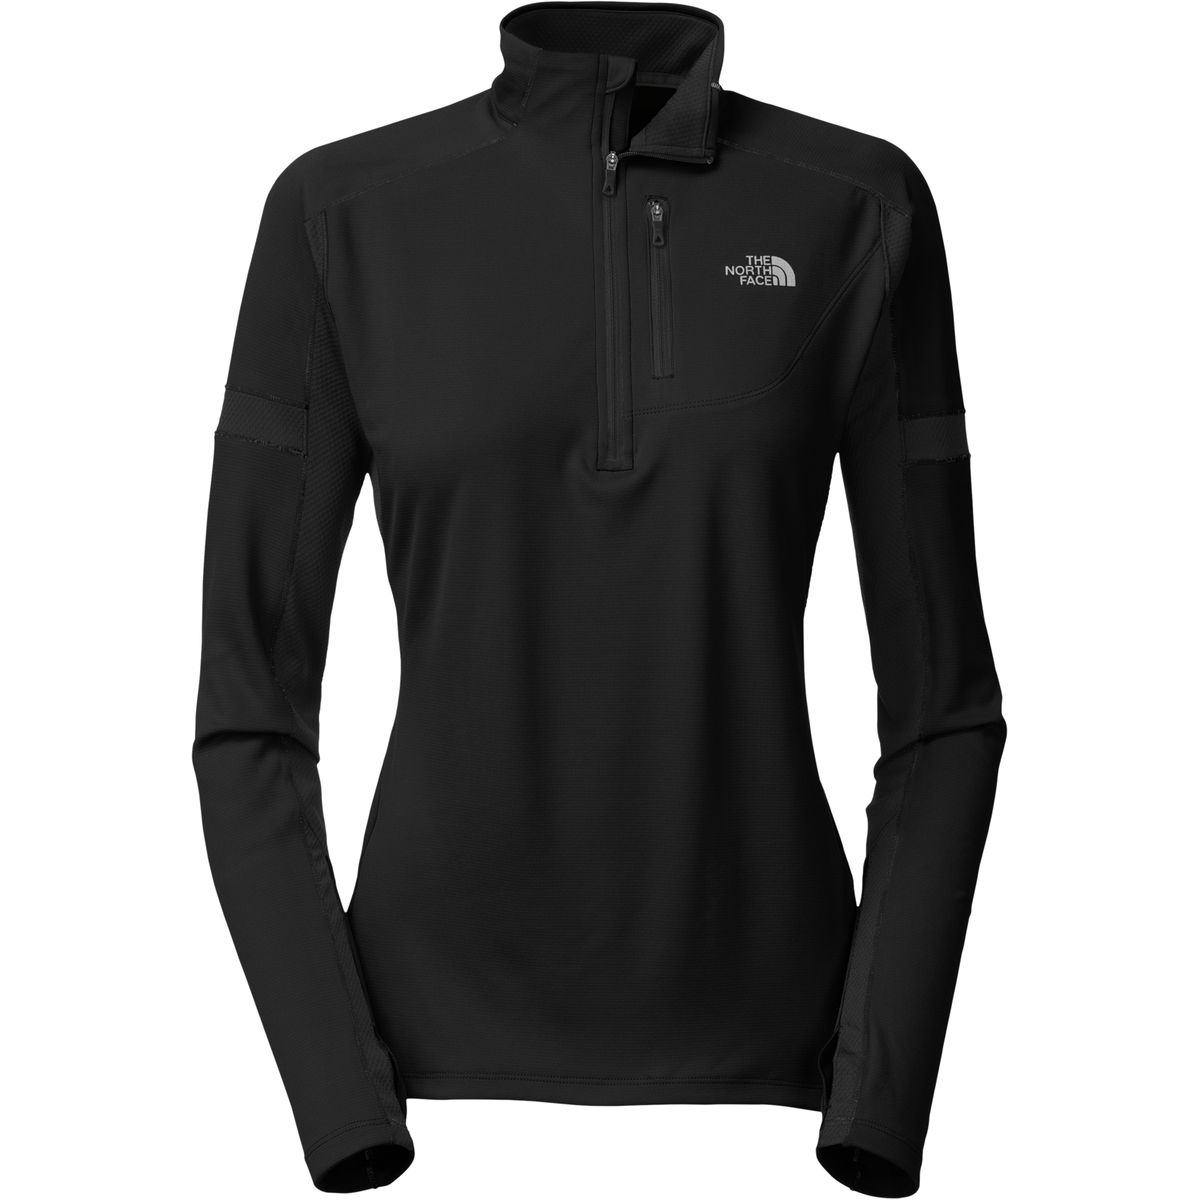 The North Face Impulse Active 1/4-Zip Shirt - Women